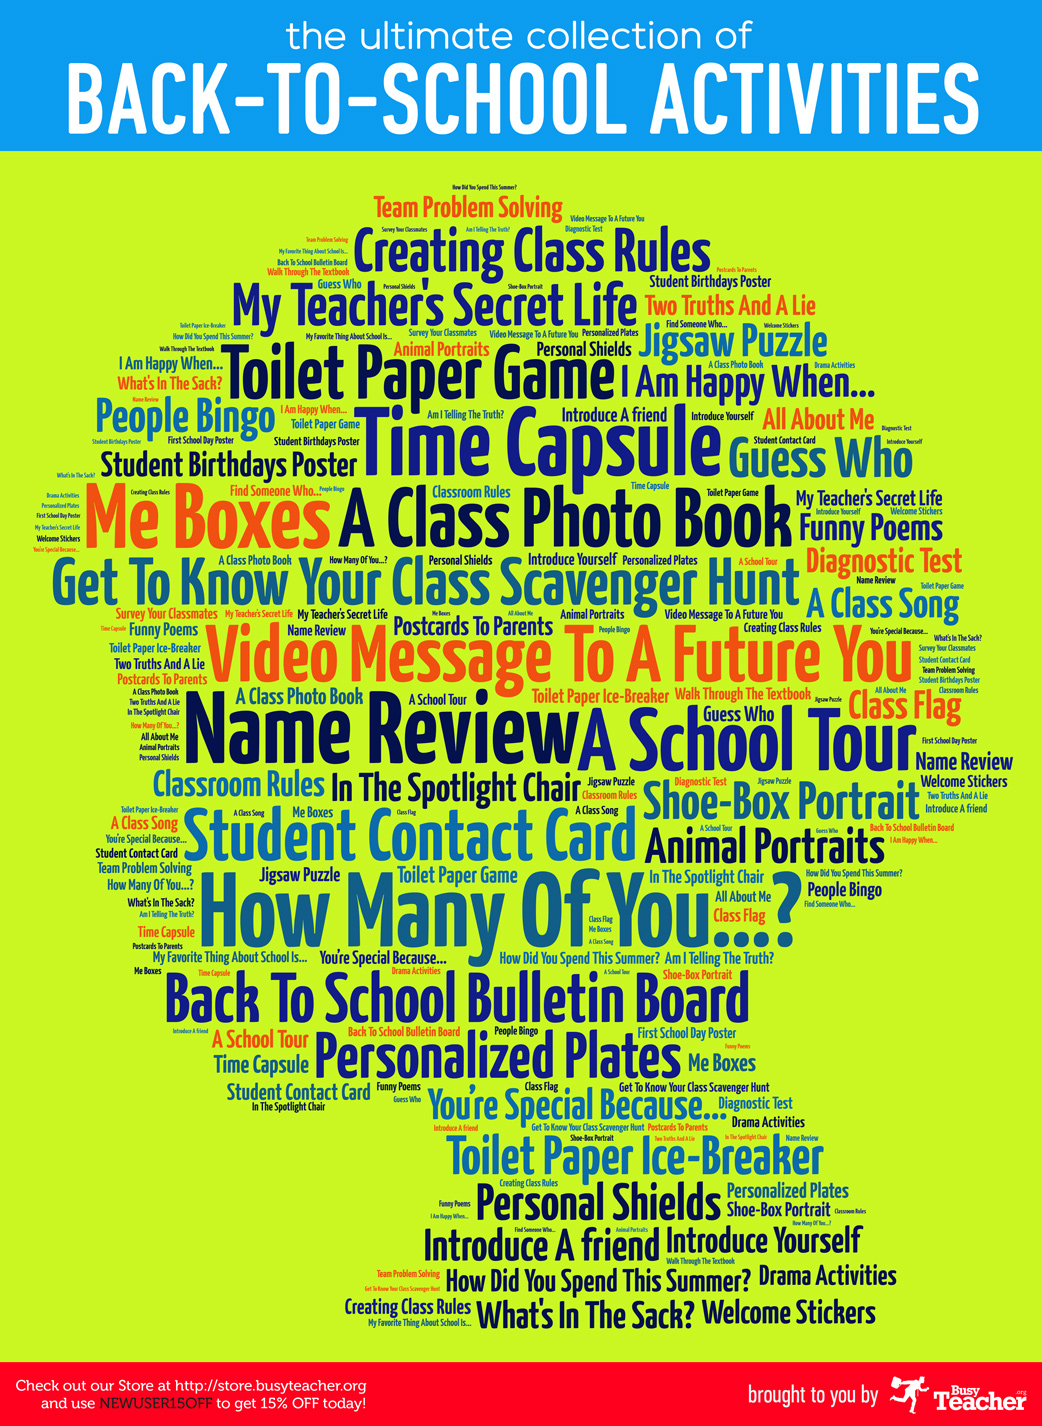 The Ultimate Collection of Back to School Activities: Poster